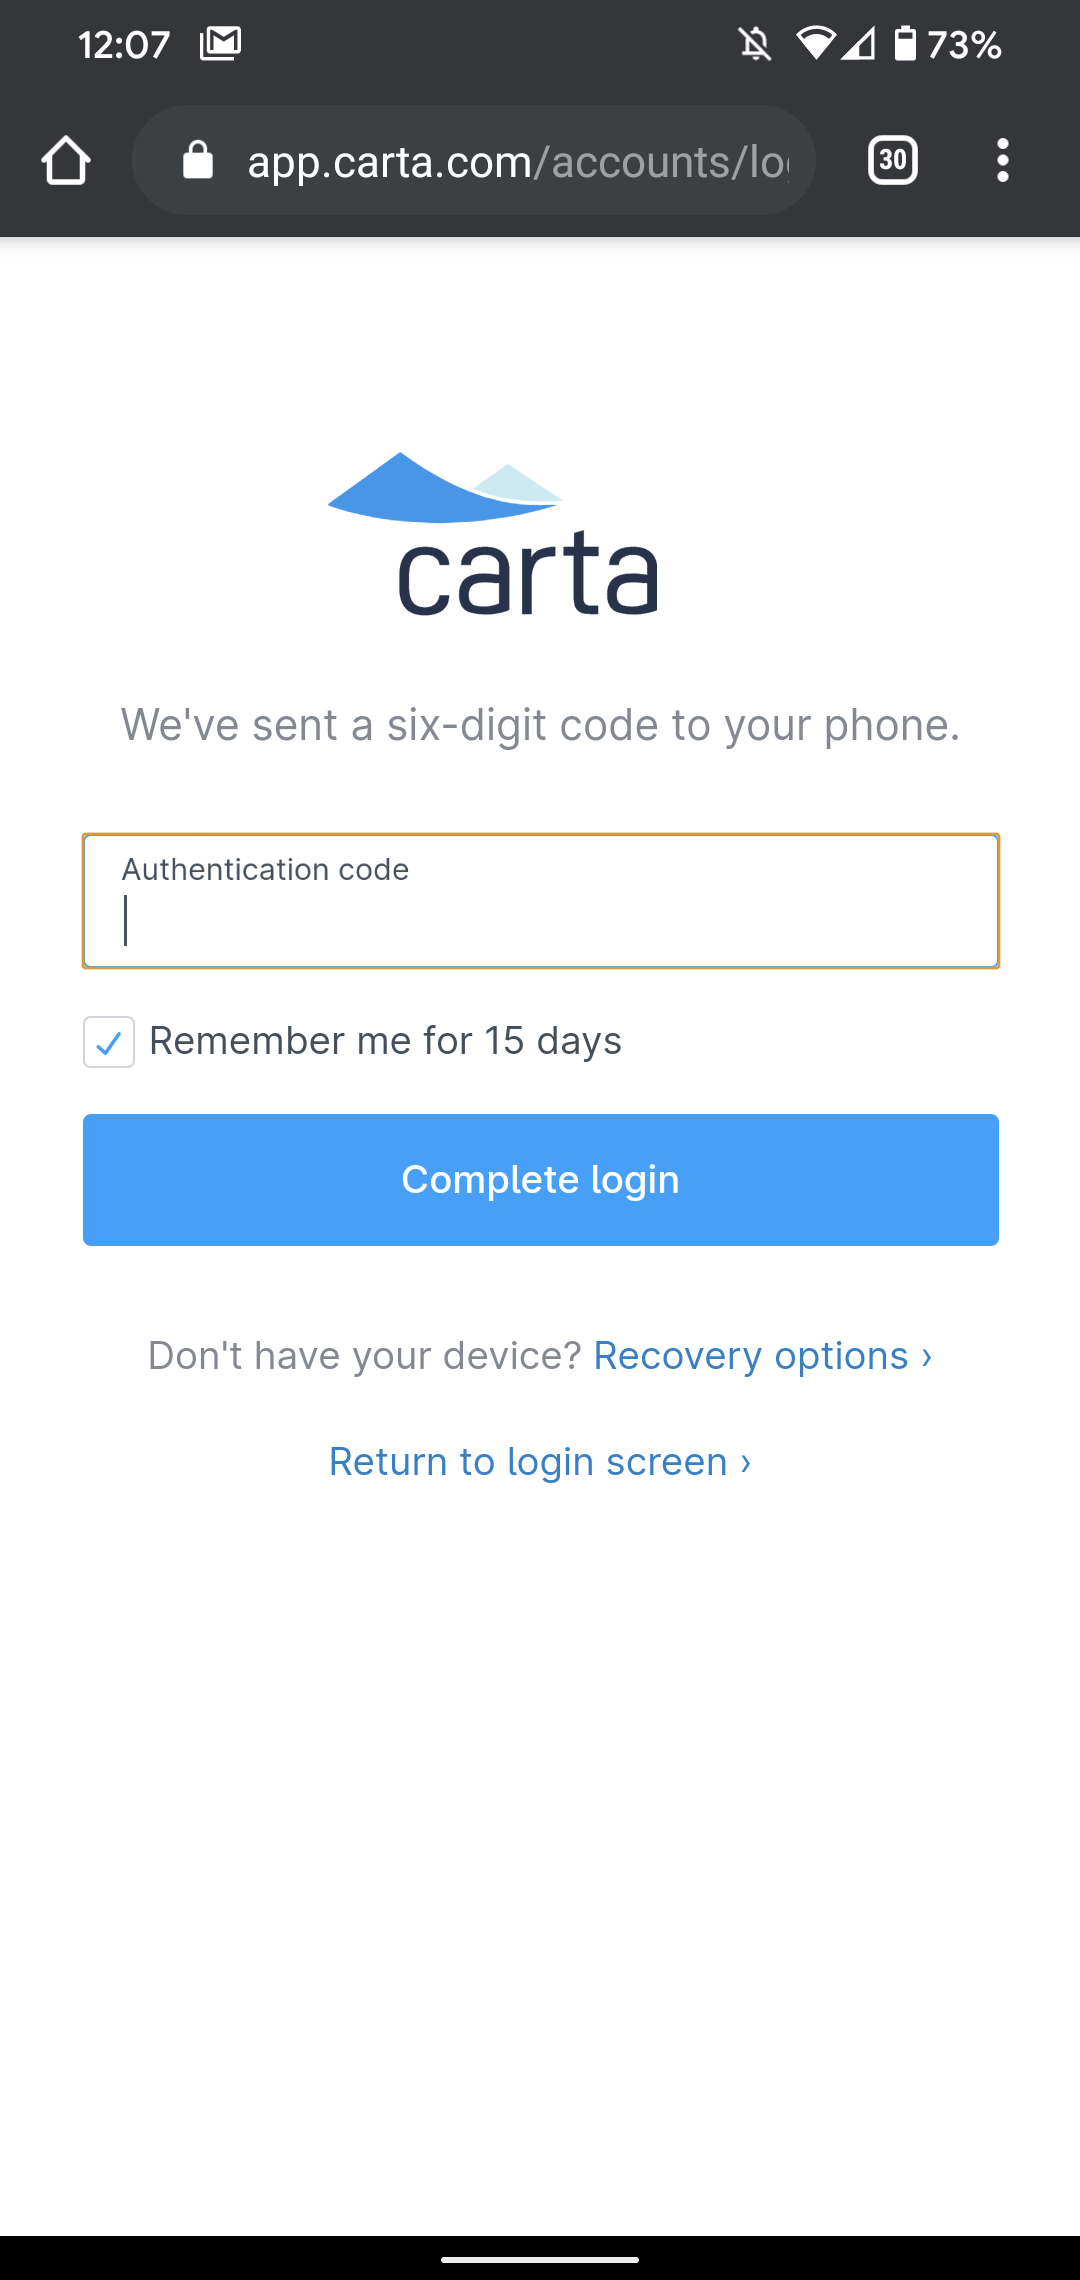 one-time password screen